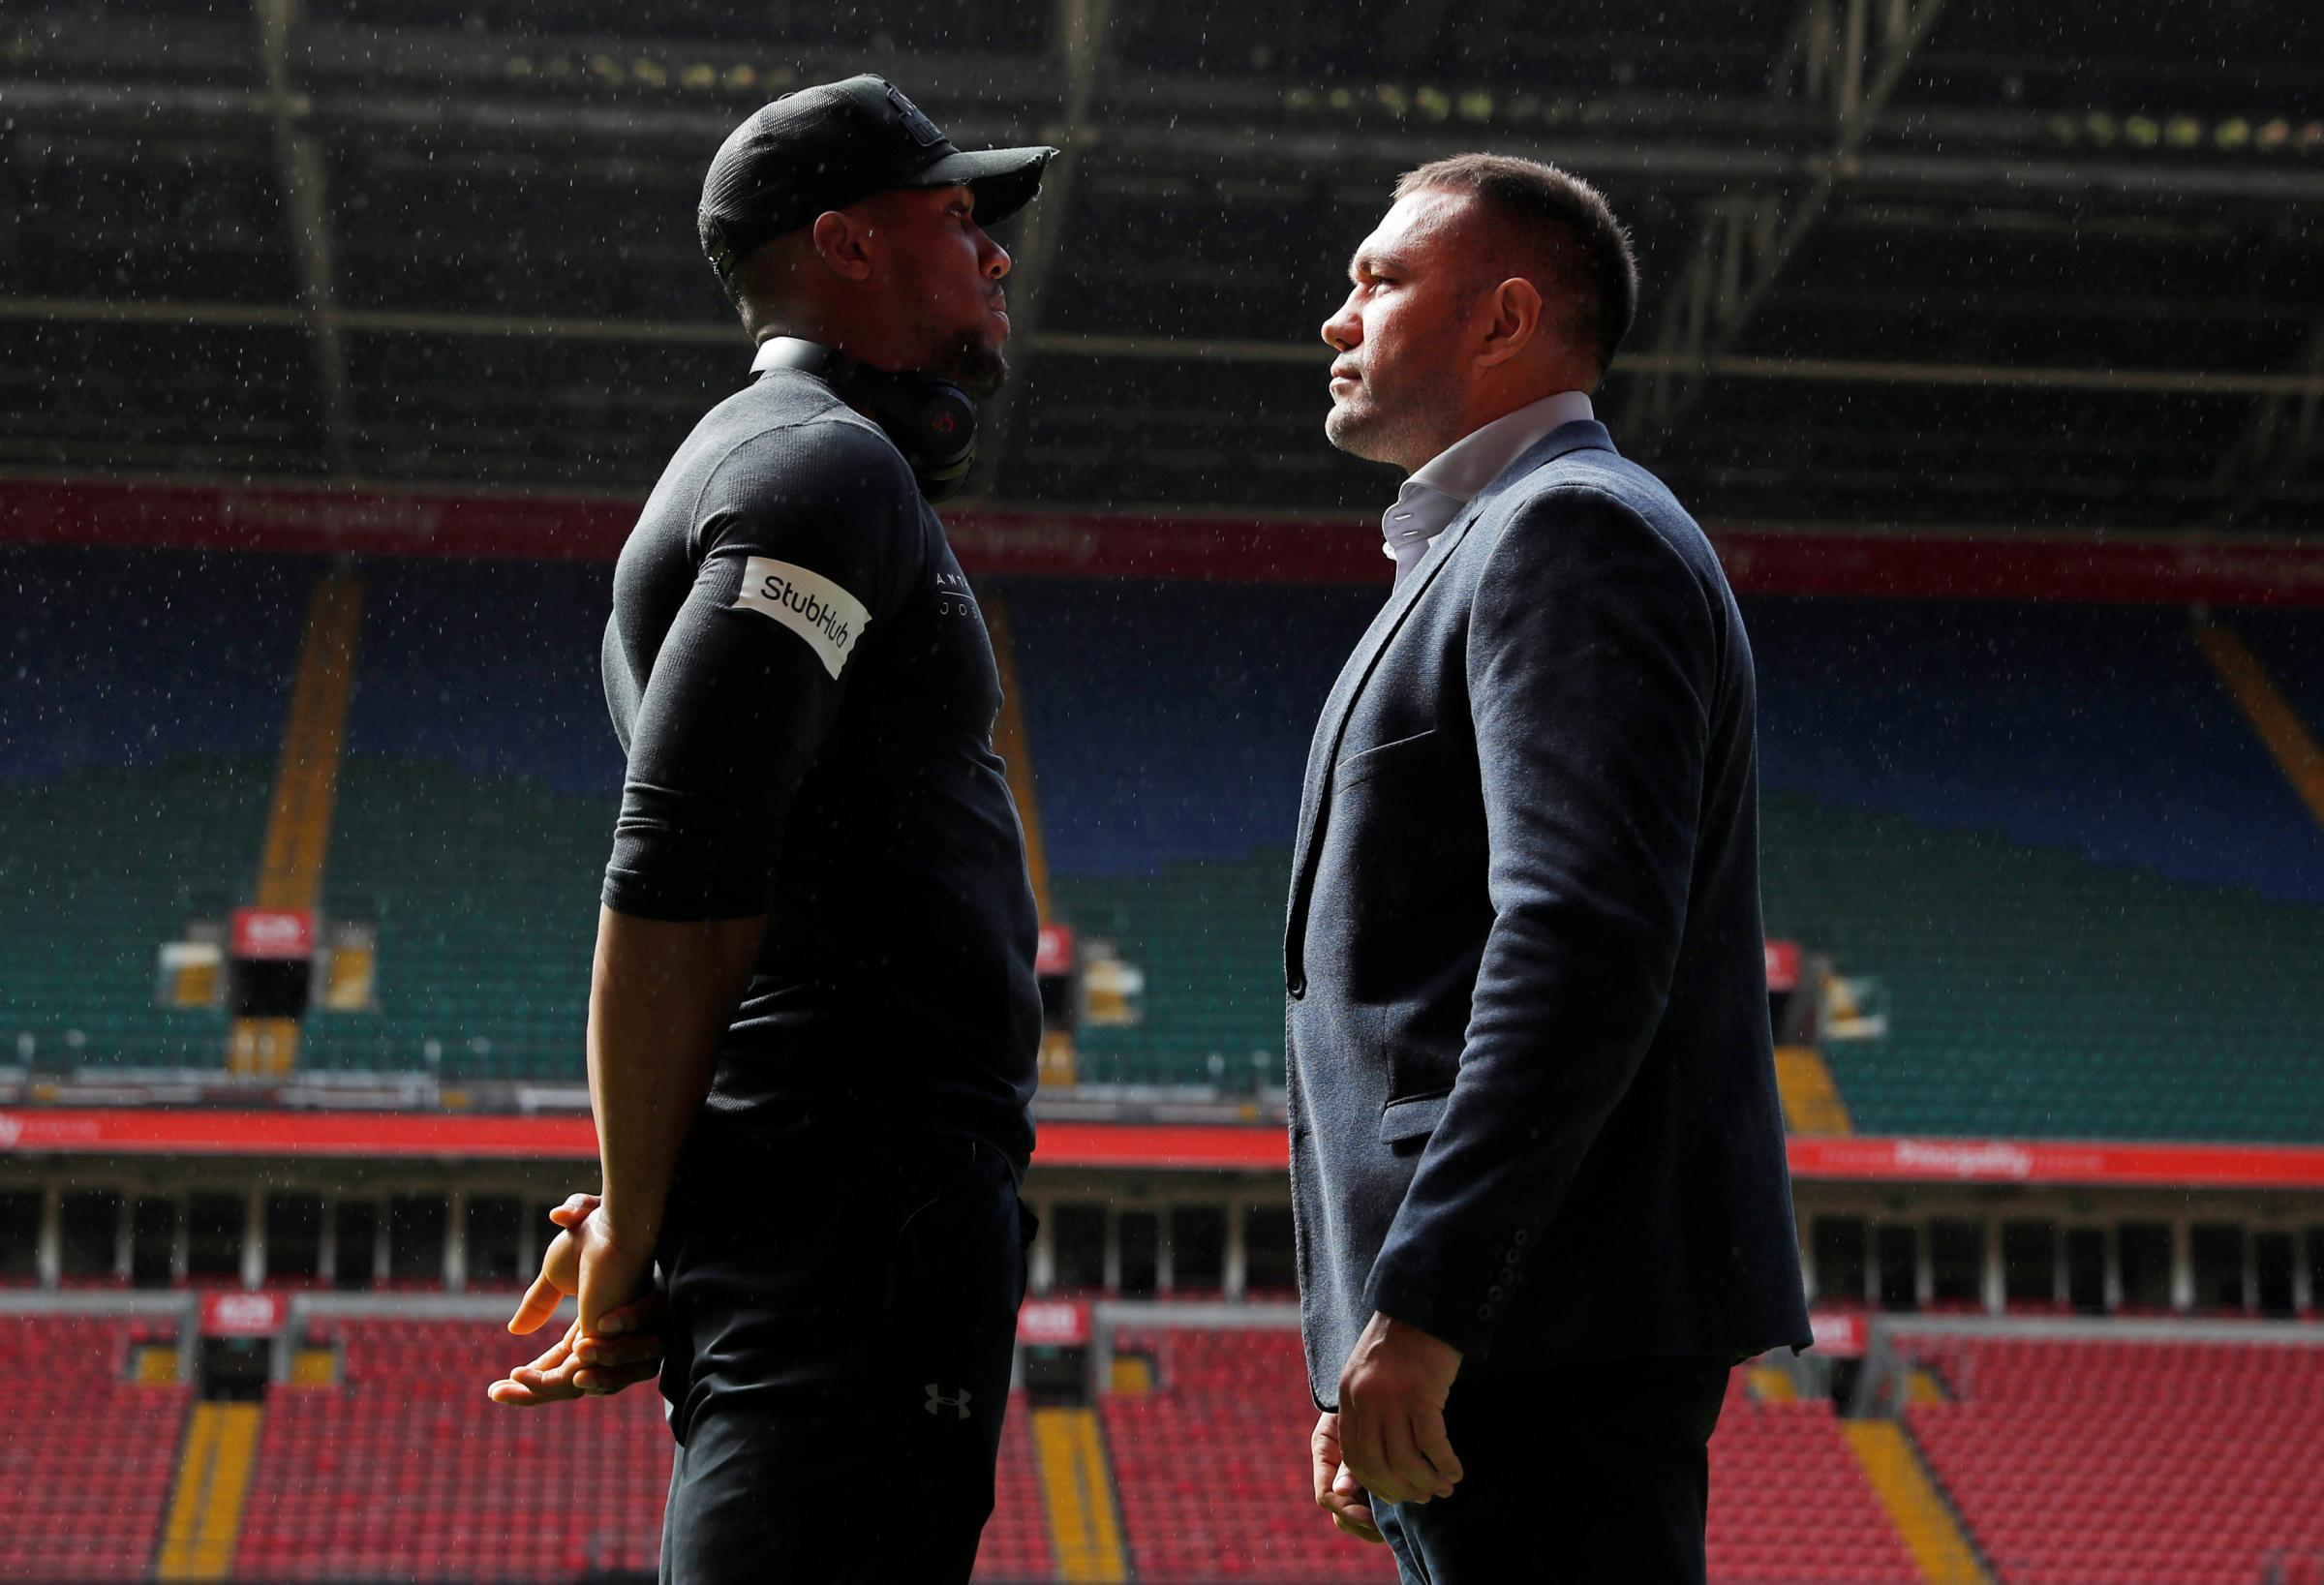 Facing off: Anthony Joshua and Kubrat Pulev in the Principality Stadium. Picture: Action Images